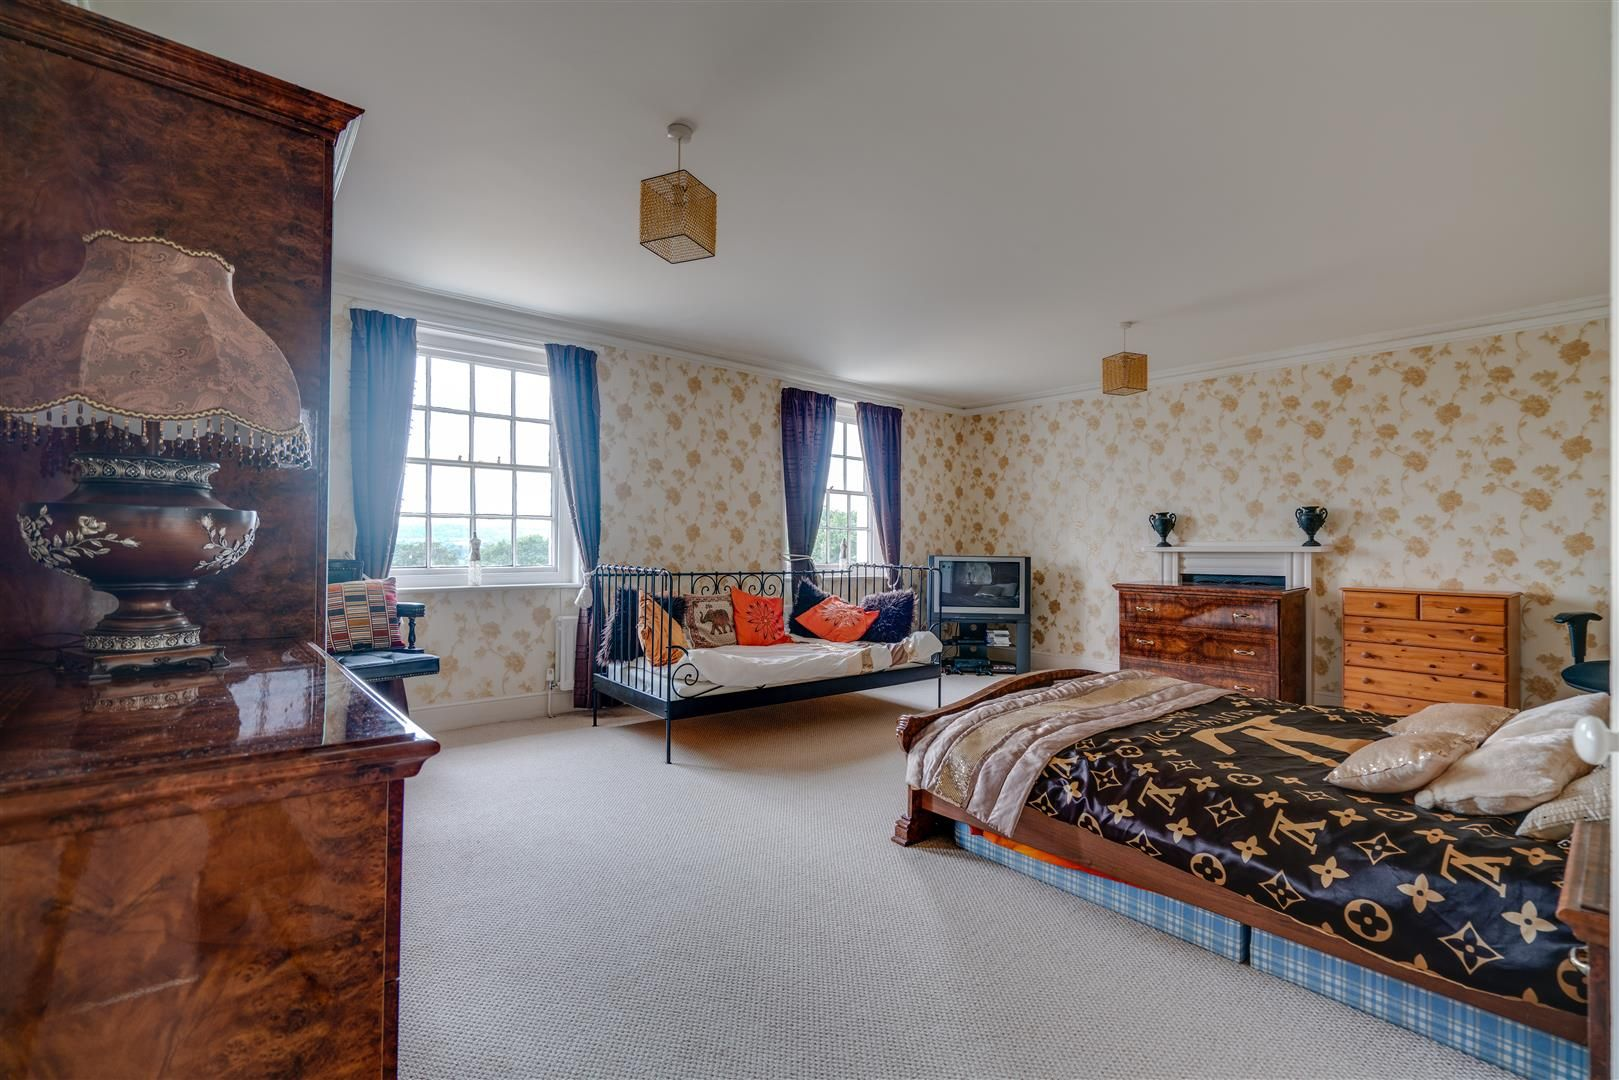 7 bed house for sale in Wolverley 15